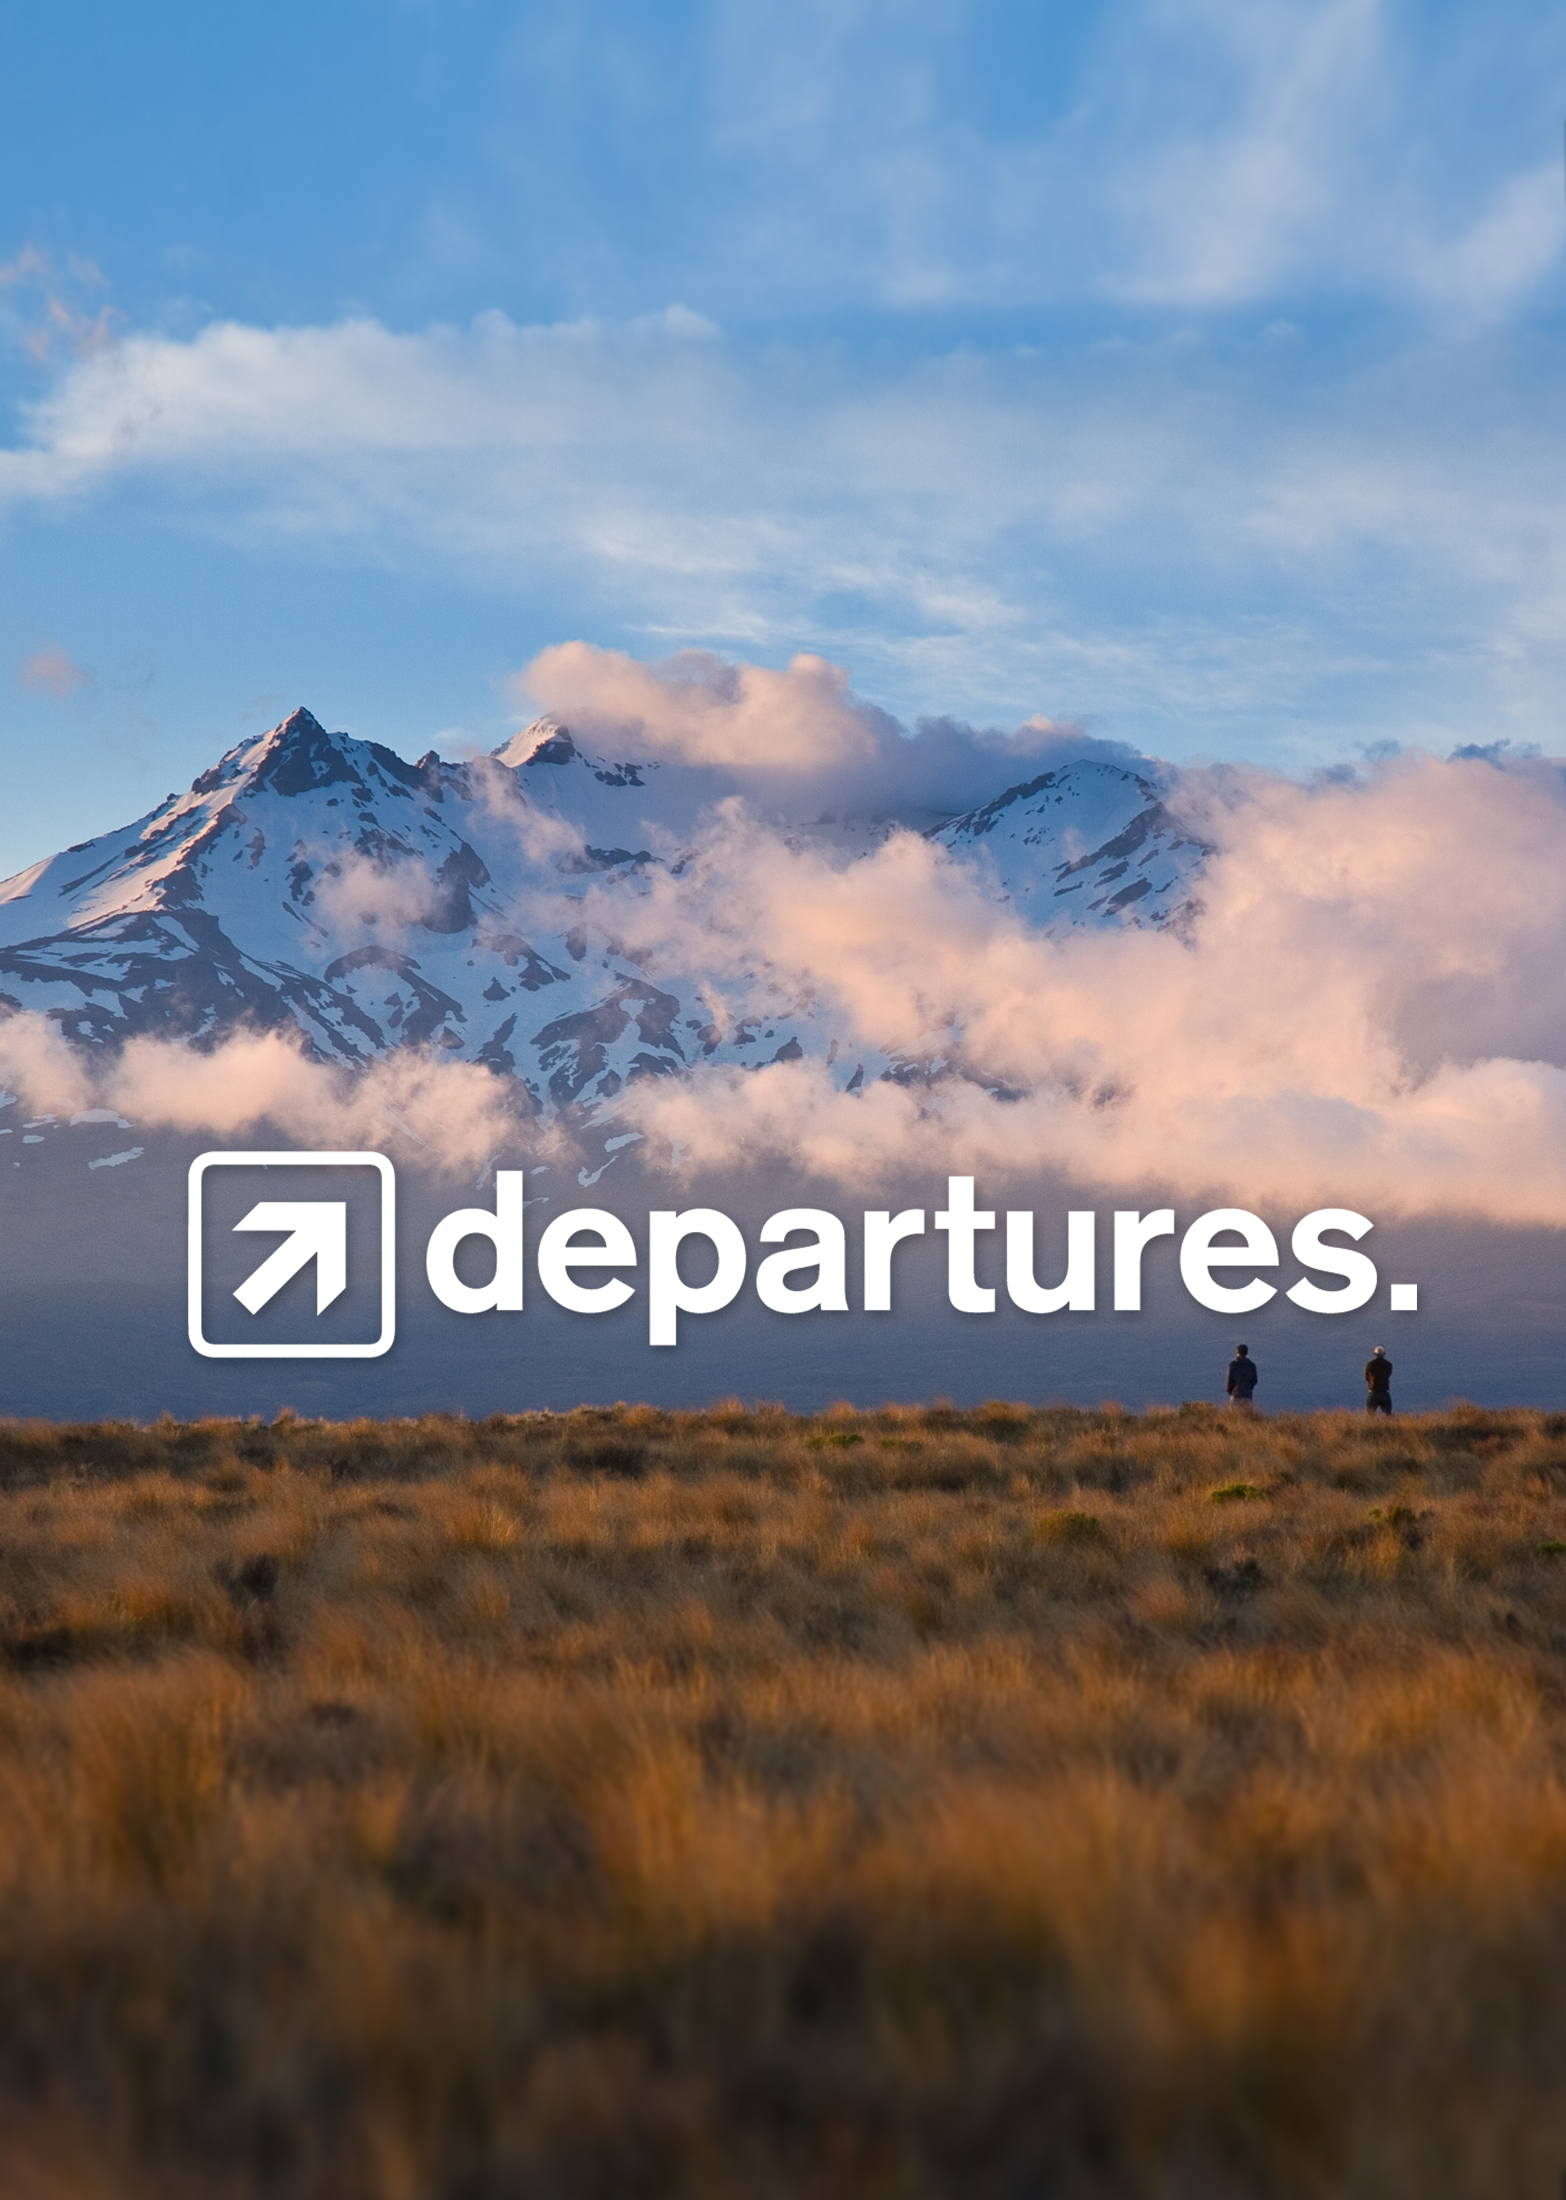 Departures (TV Series 2008– ) - IMDb